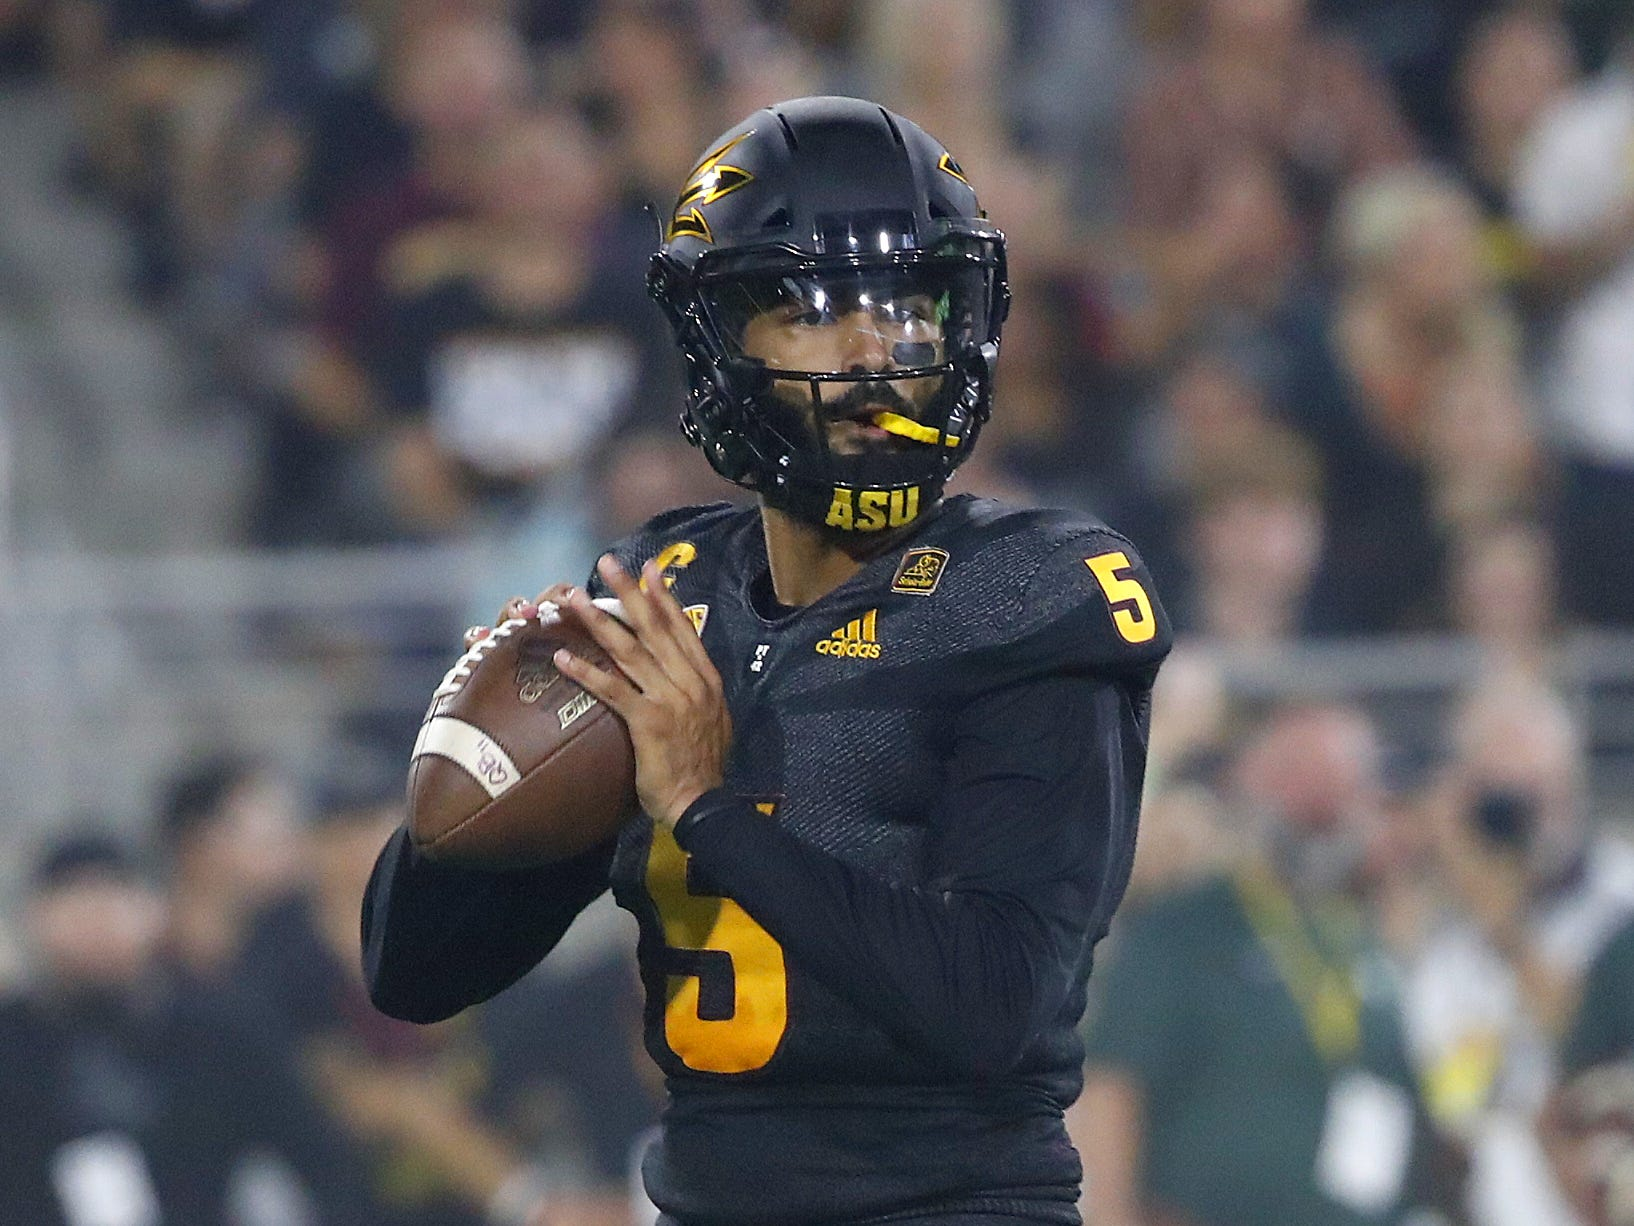 Arizona State Sun Devils quarterback Manny Wilkins (5) looks for receivers against Michigan State during the second quarter at Sun Devil Stadium in Tempe, Ariz. on Sept. 8, 2018.